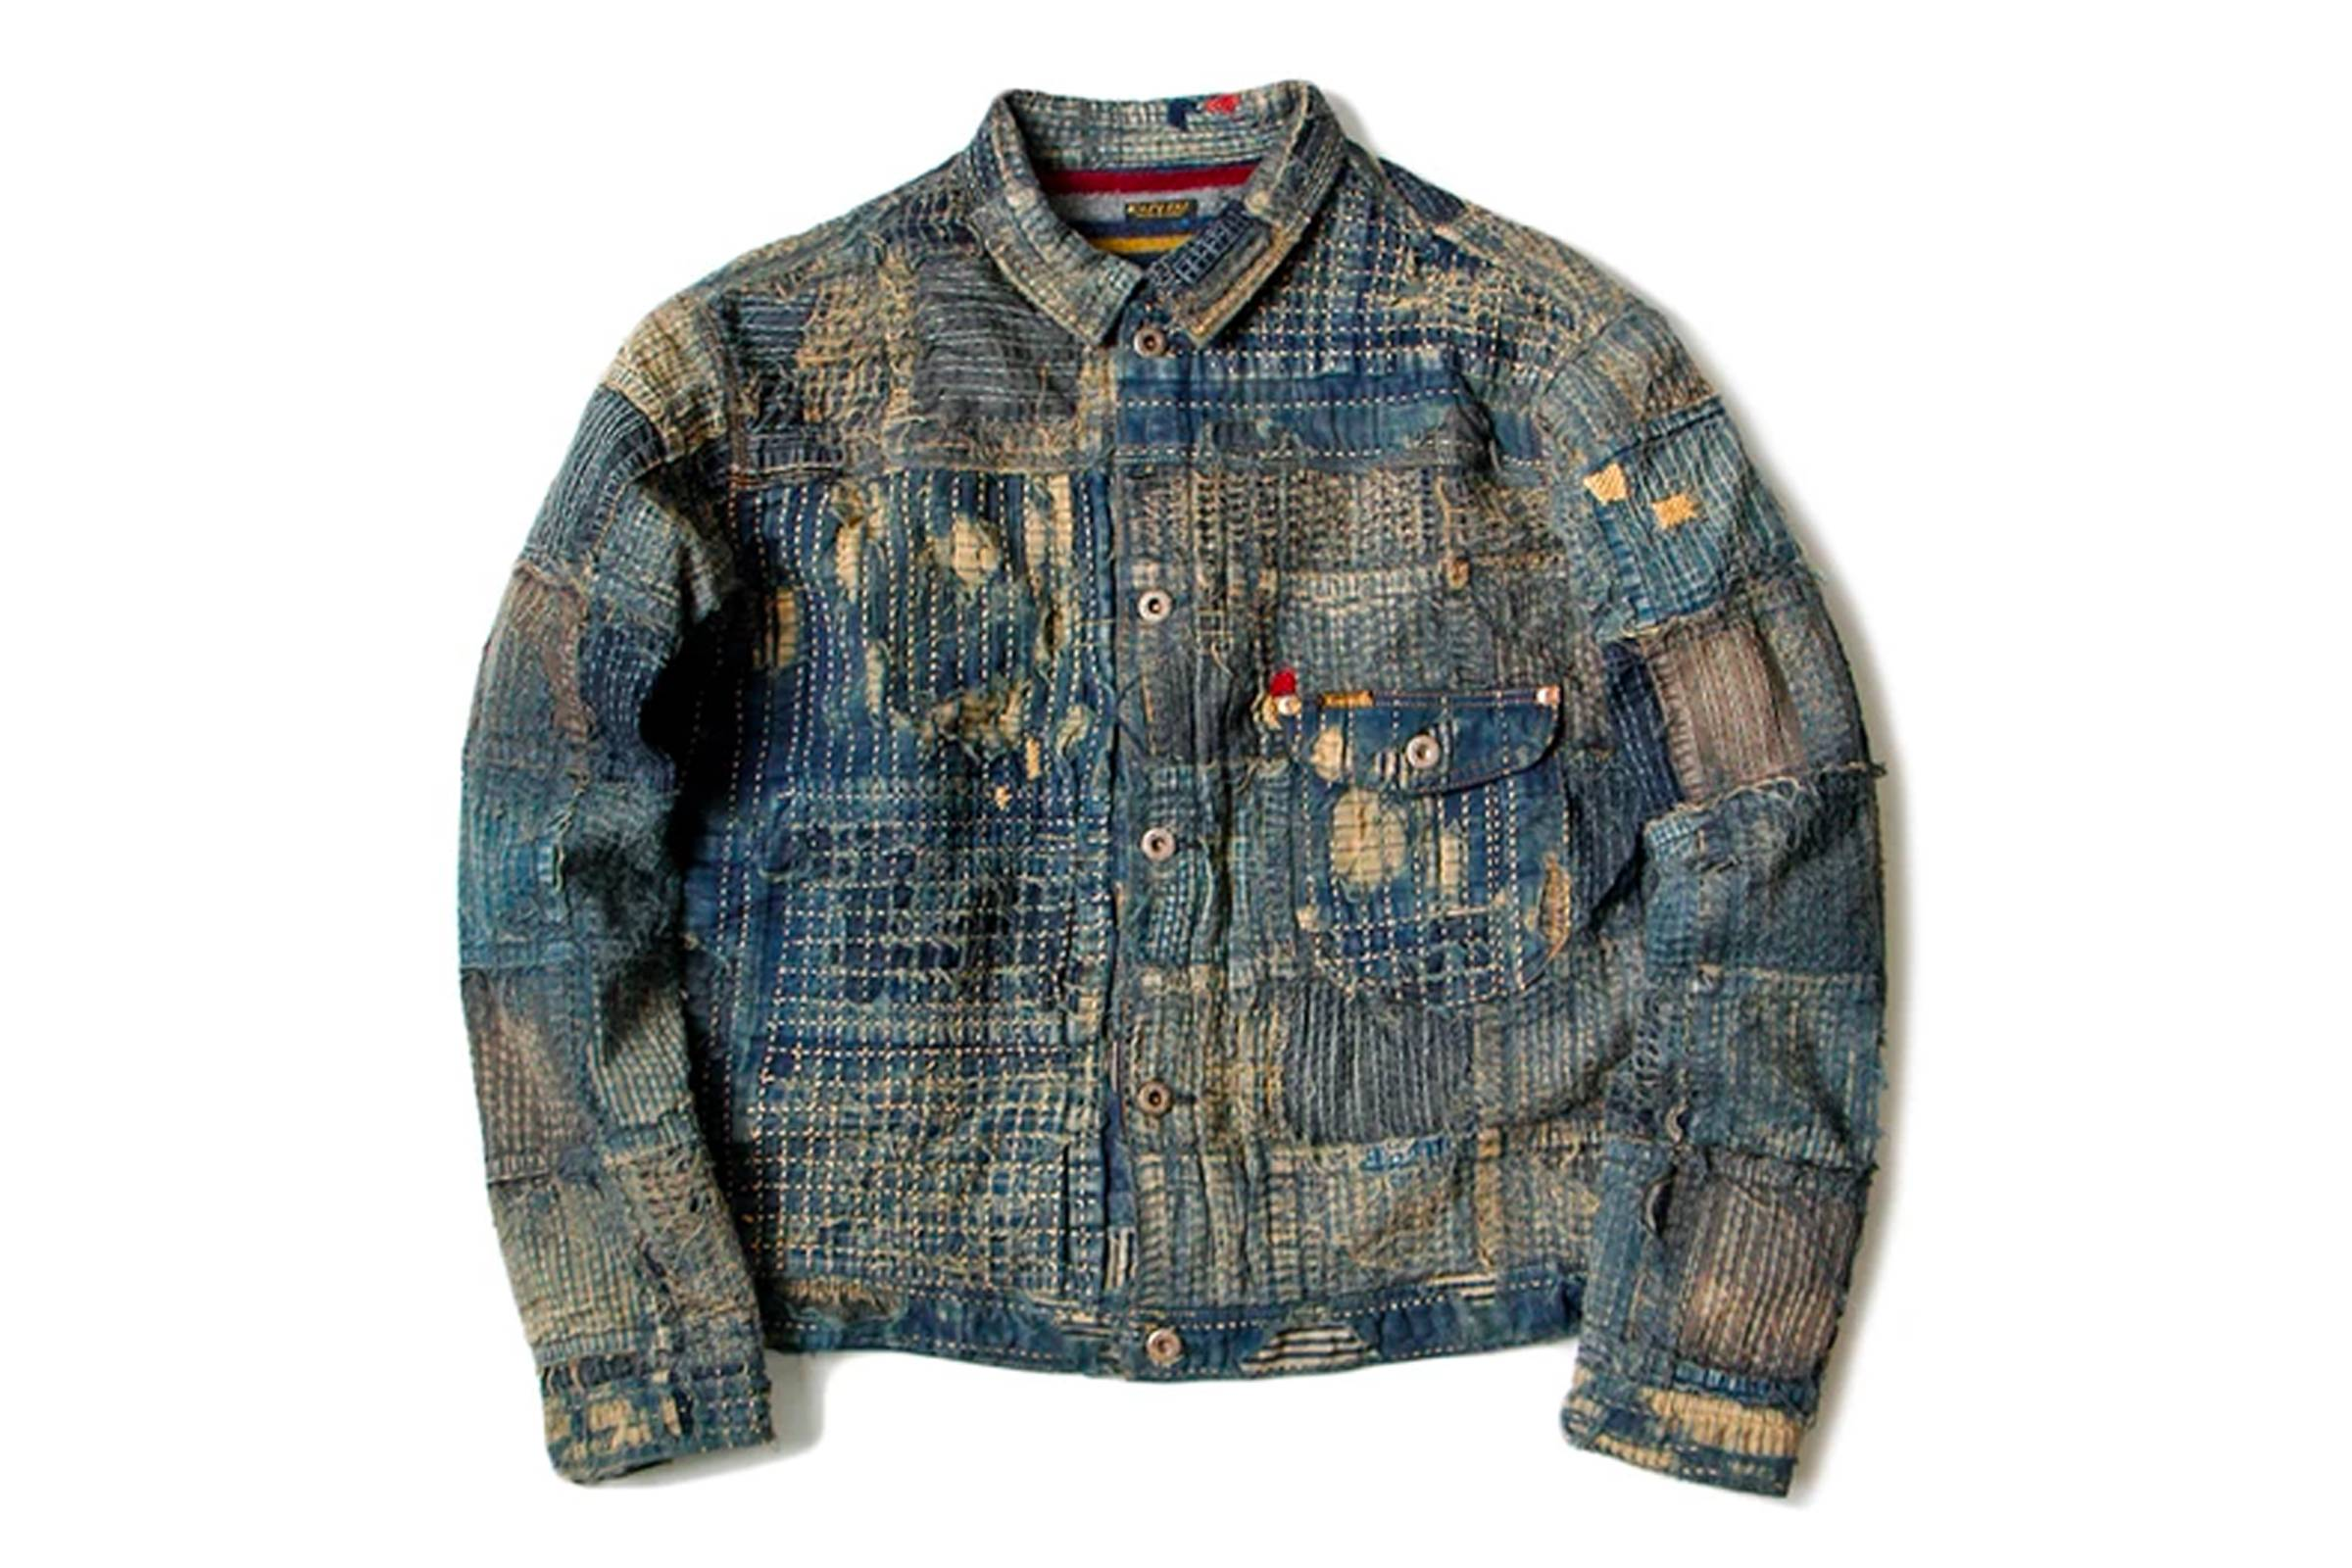 Kapital Kountry Boro Denim Jacket